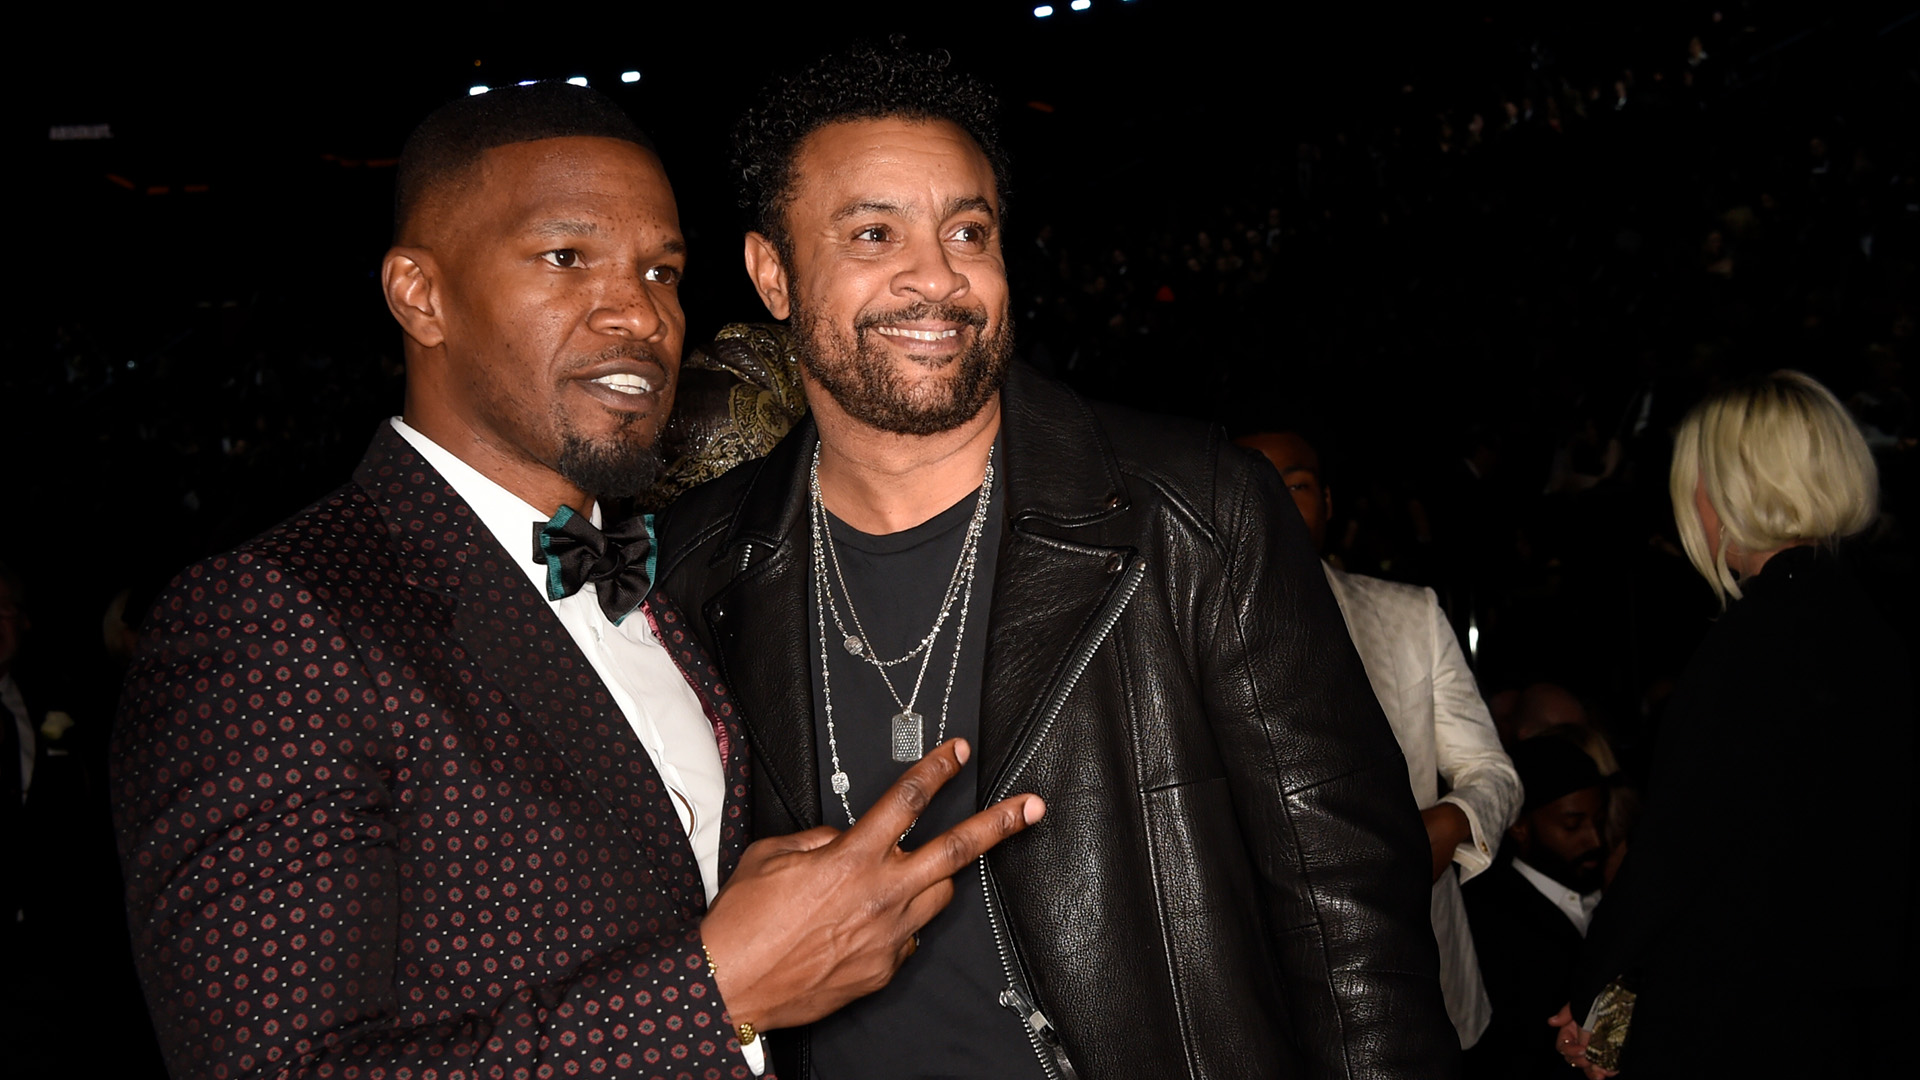 Actor Jamie Foxx throws up a peace sign alongside 60th Annual GRAMMY Awards performer Shaggy.